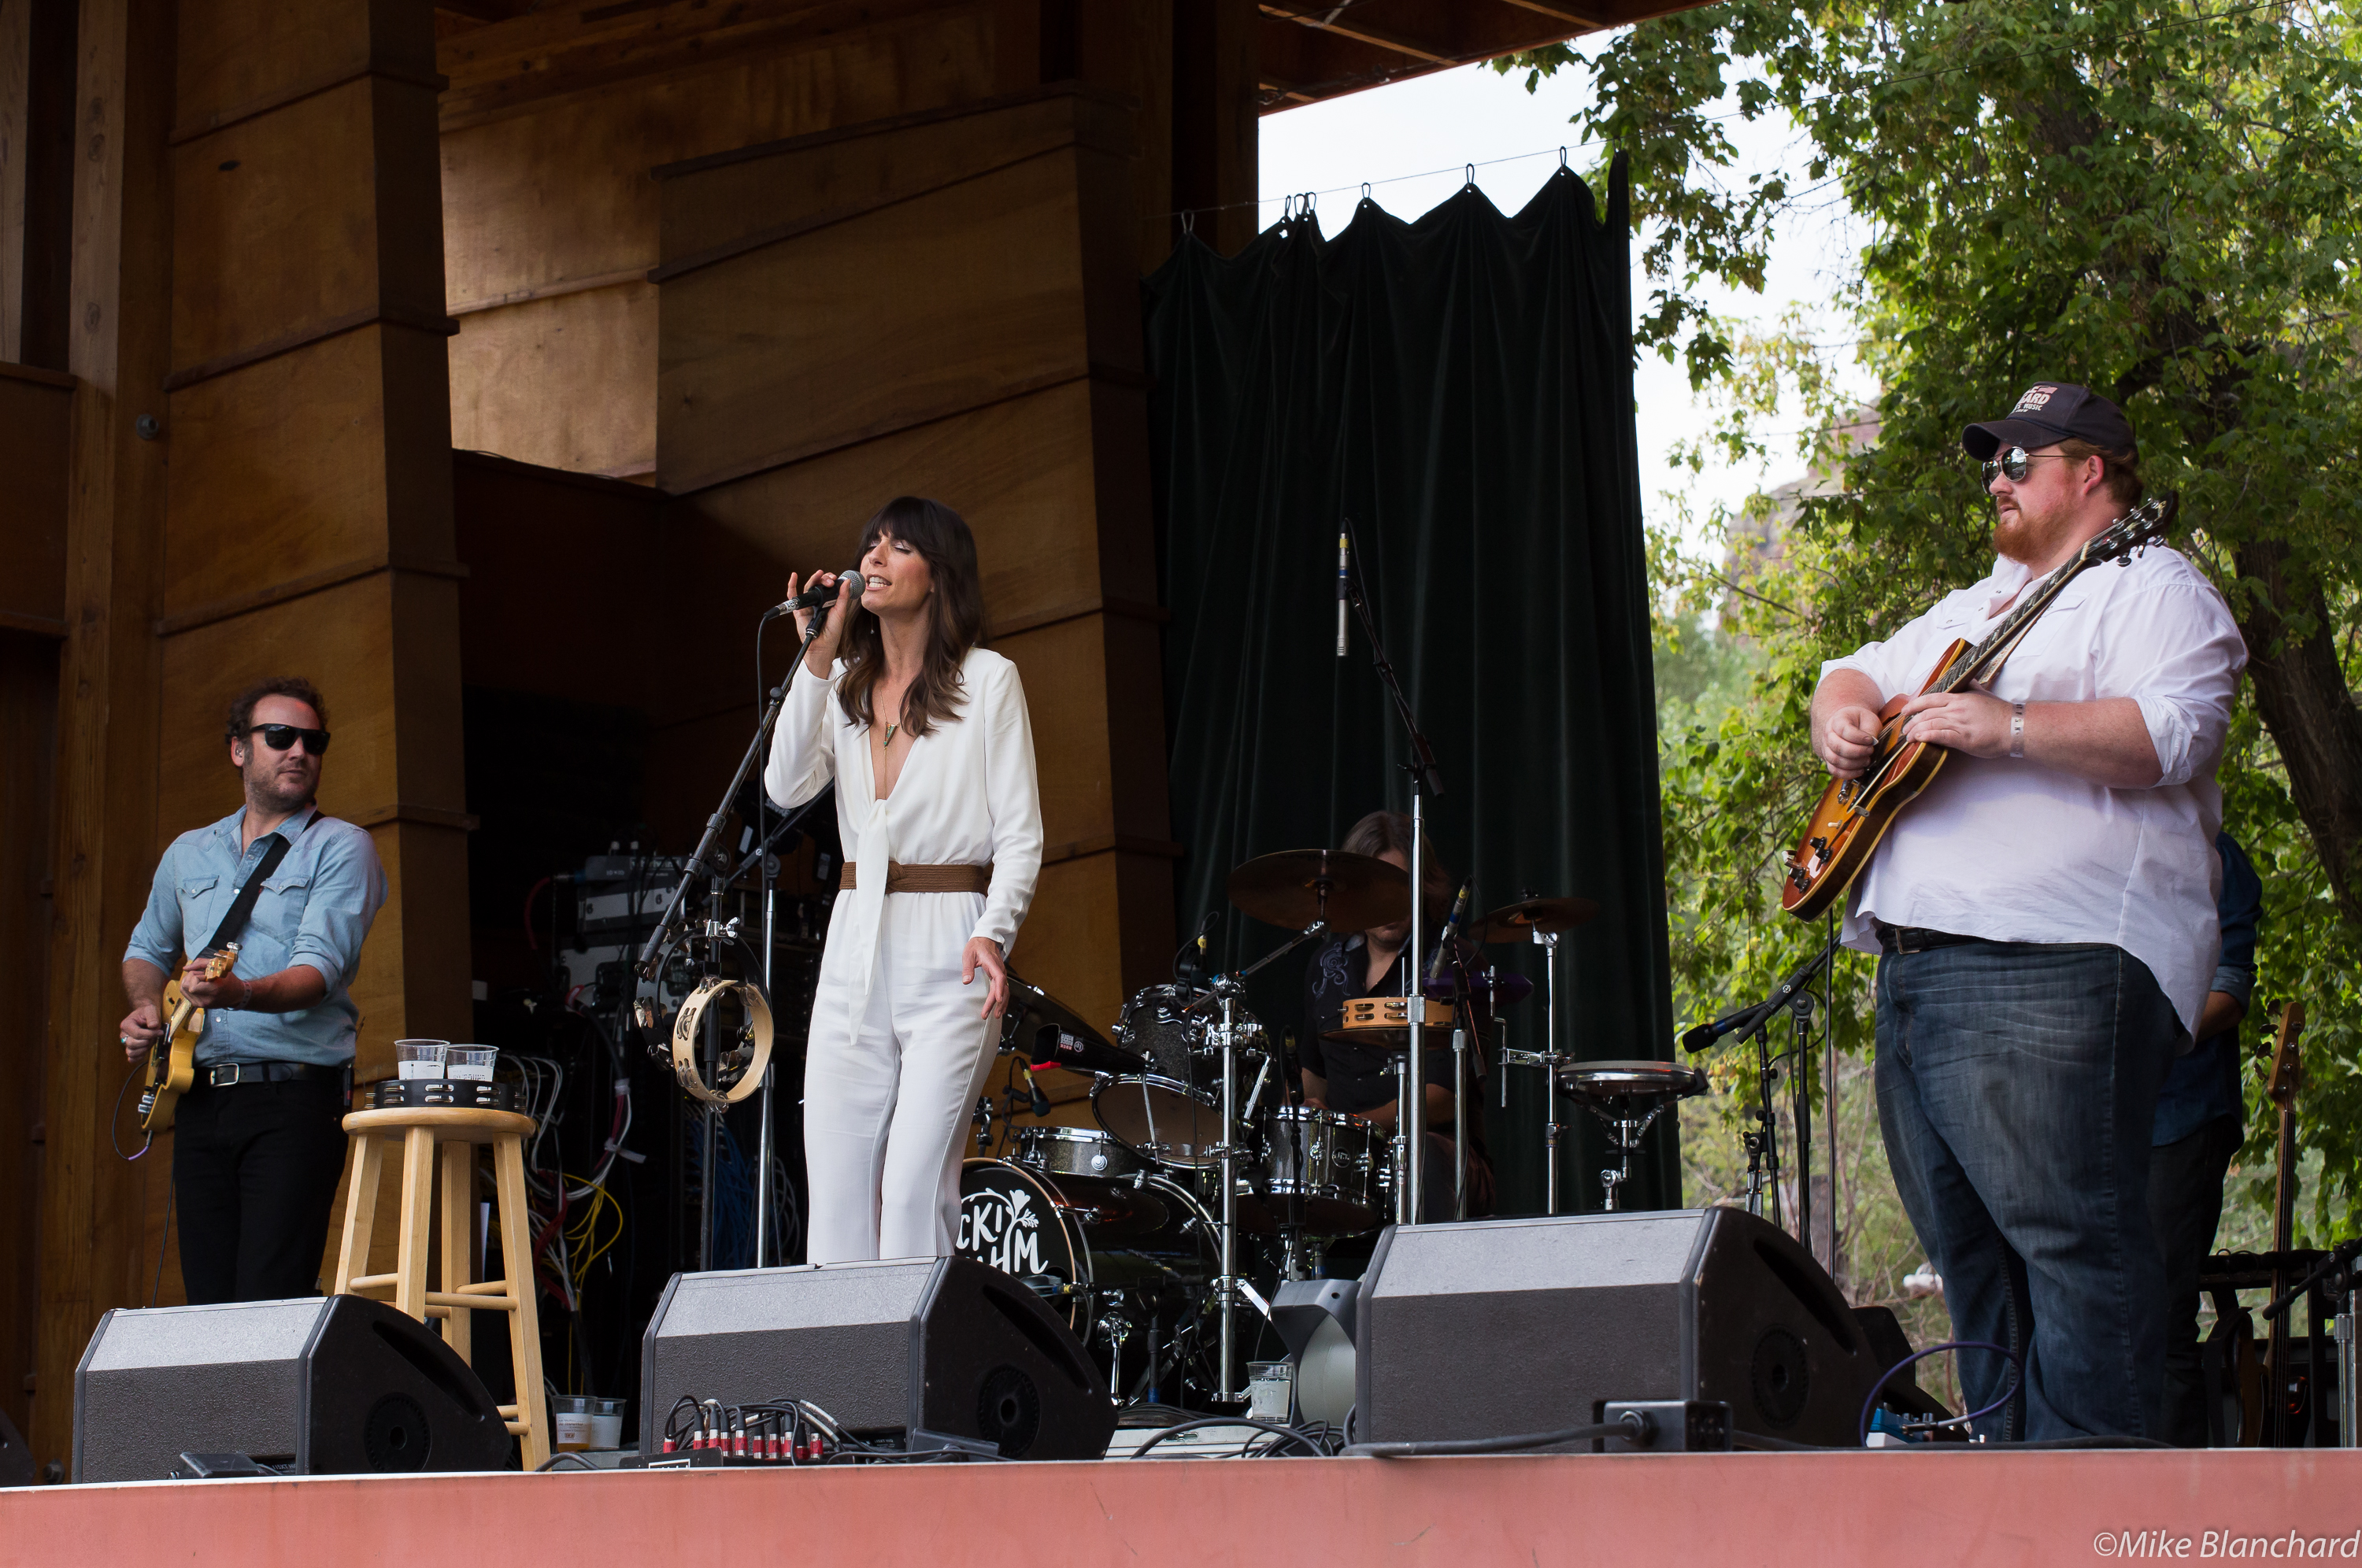 At the 2015 Rocky Mountain Folks Festival in Lyons, Colorado